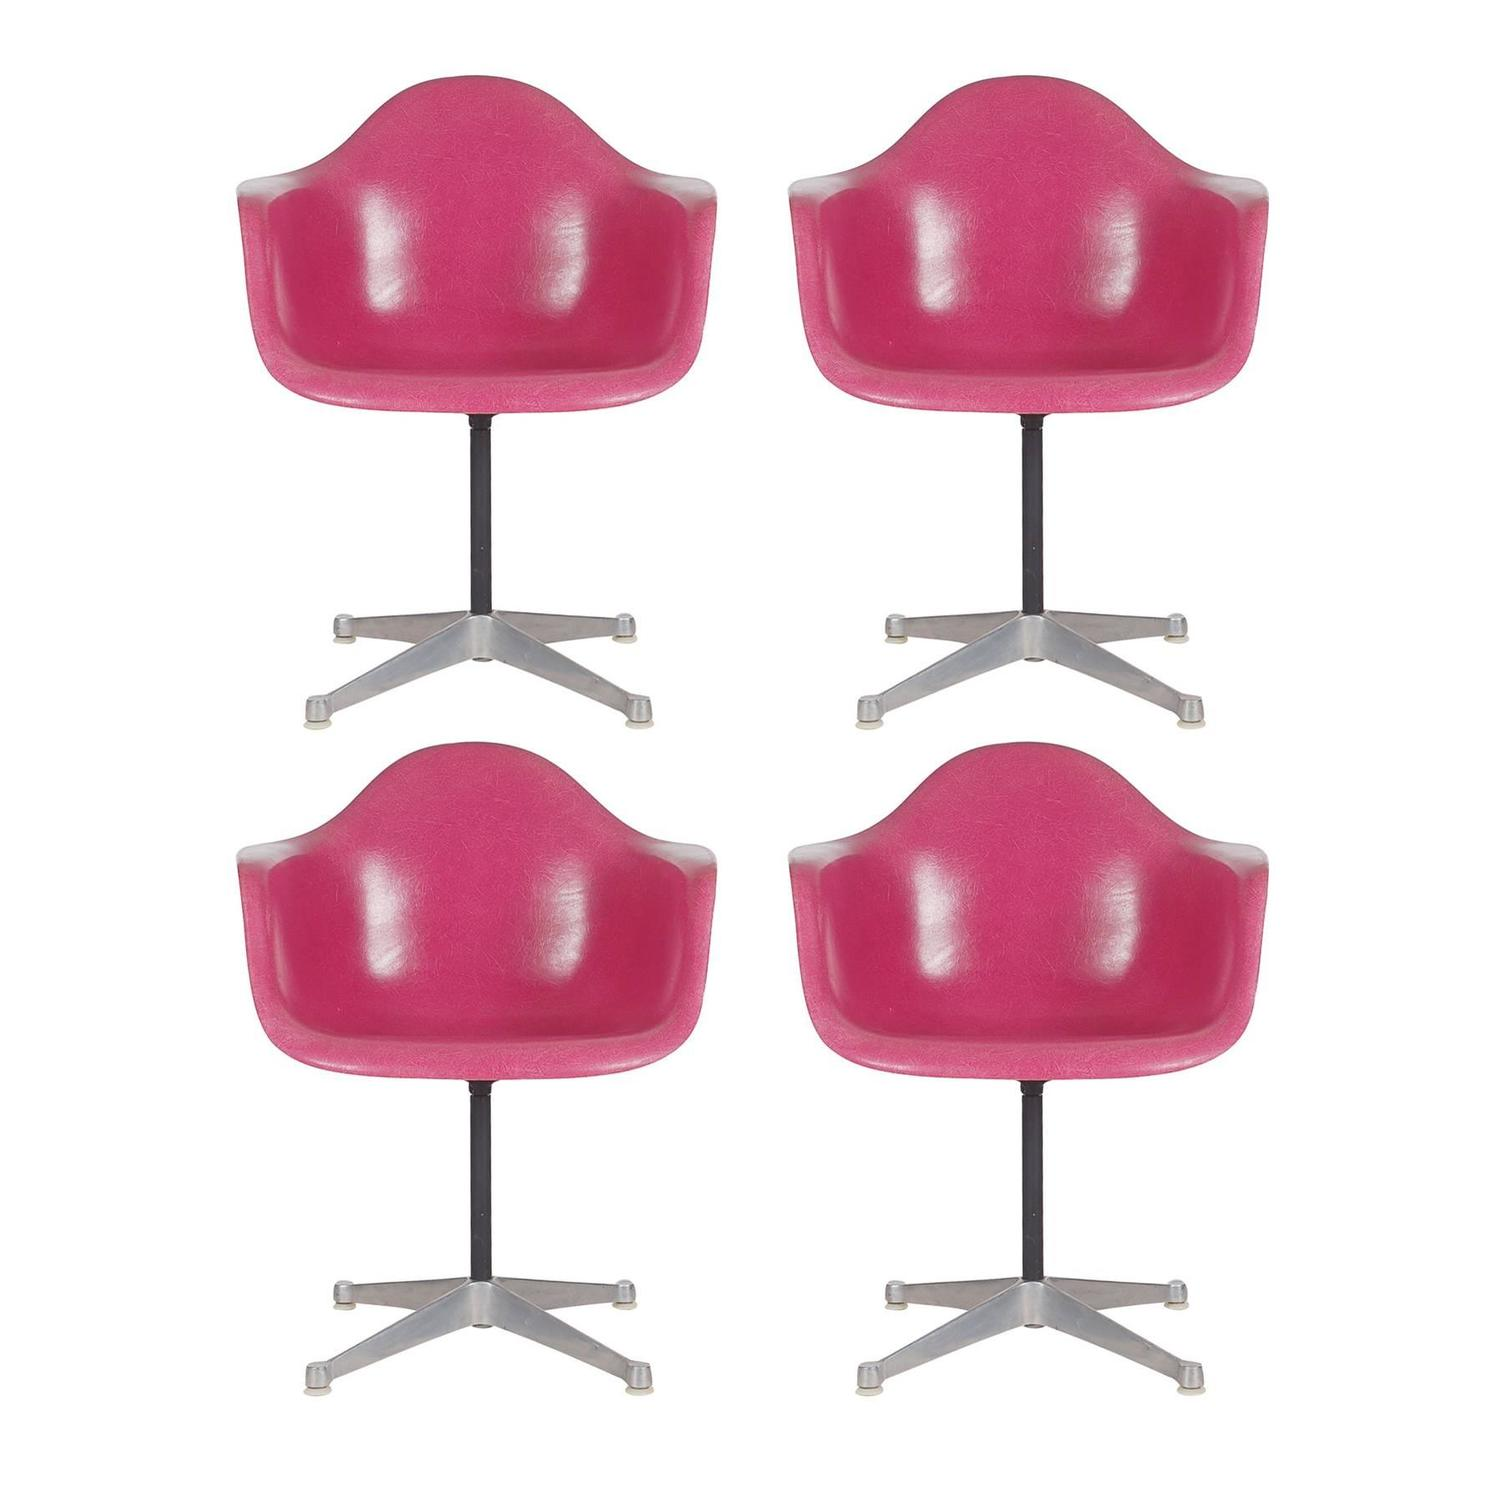 Rare Set of Four Hot Pink Fiberglass Chairs by Charles Eames for